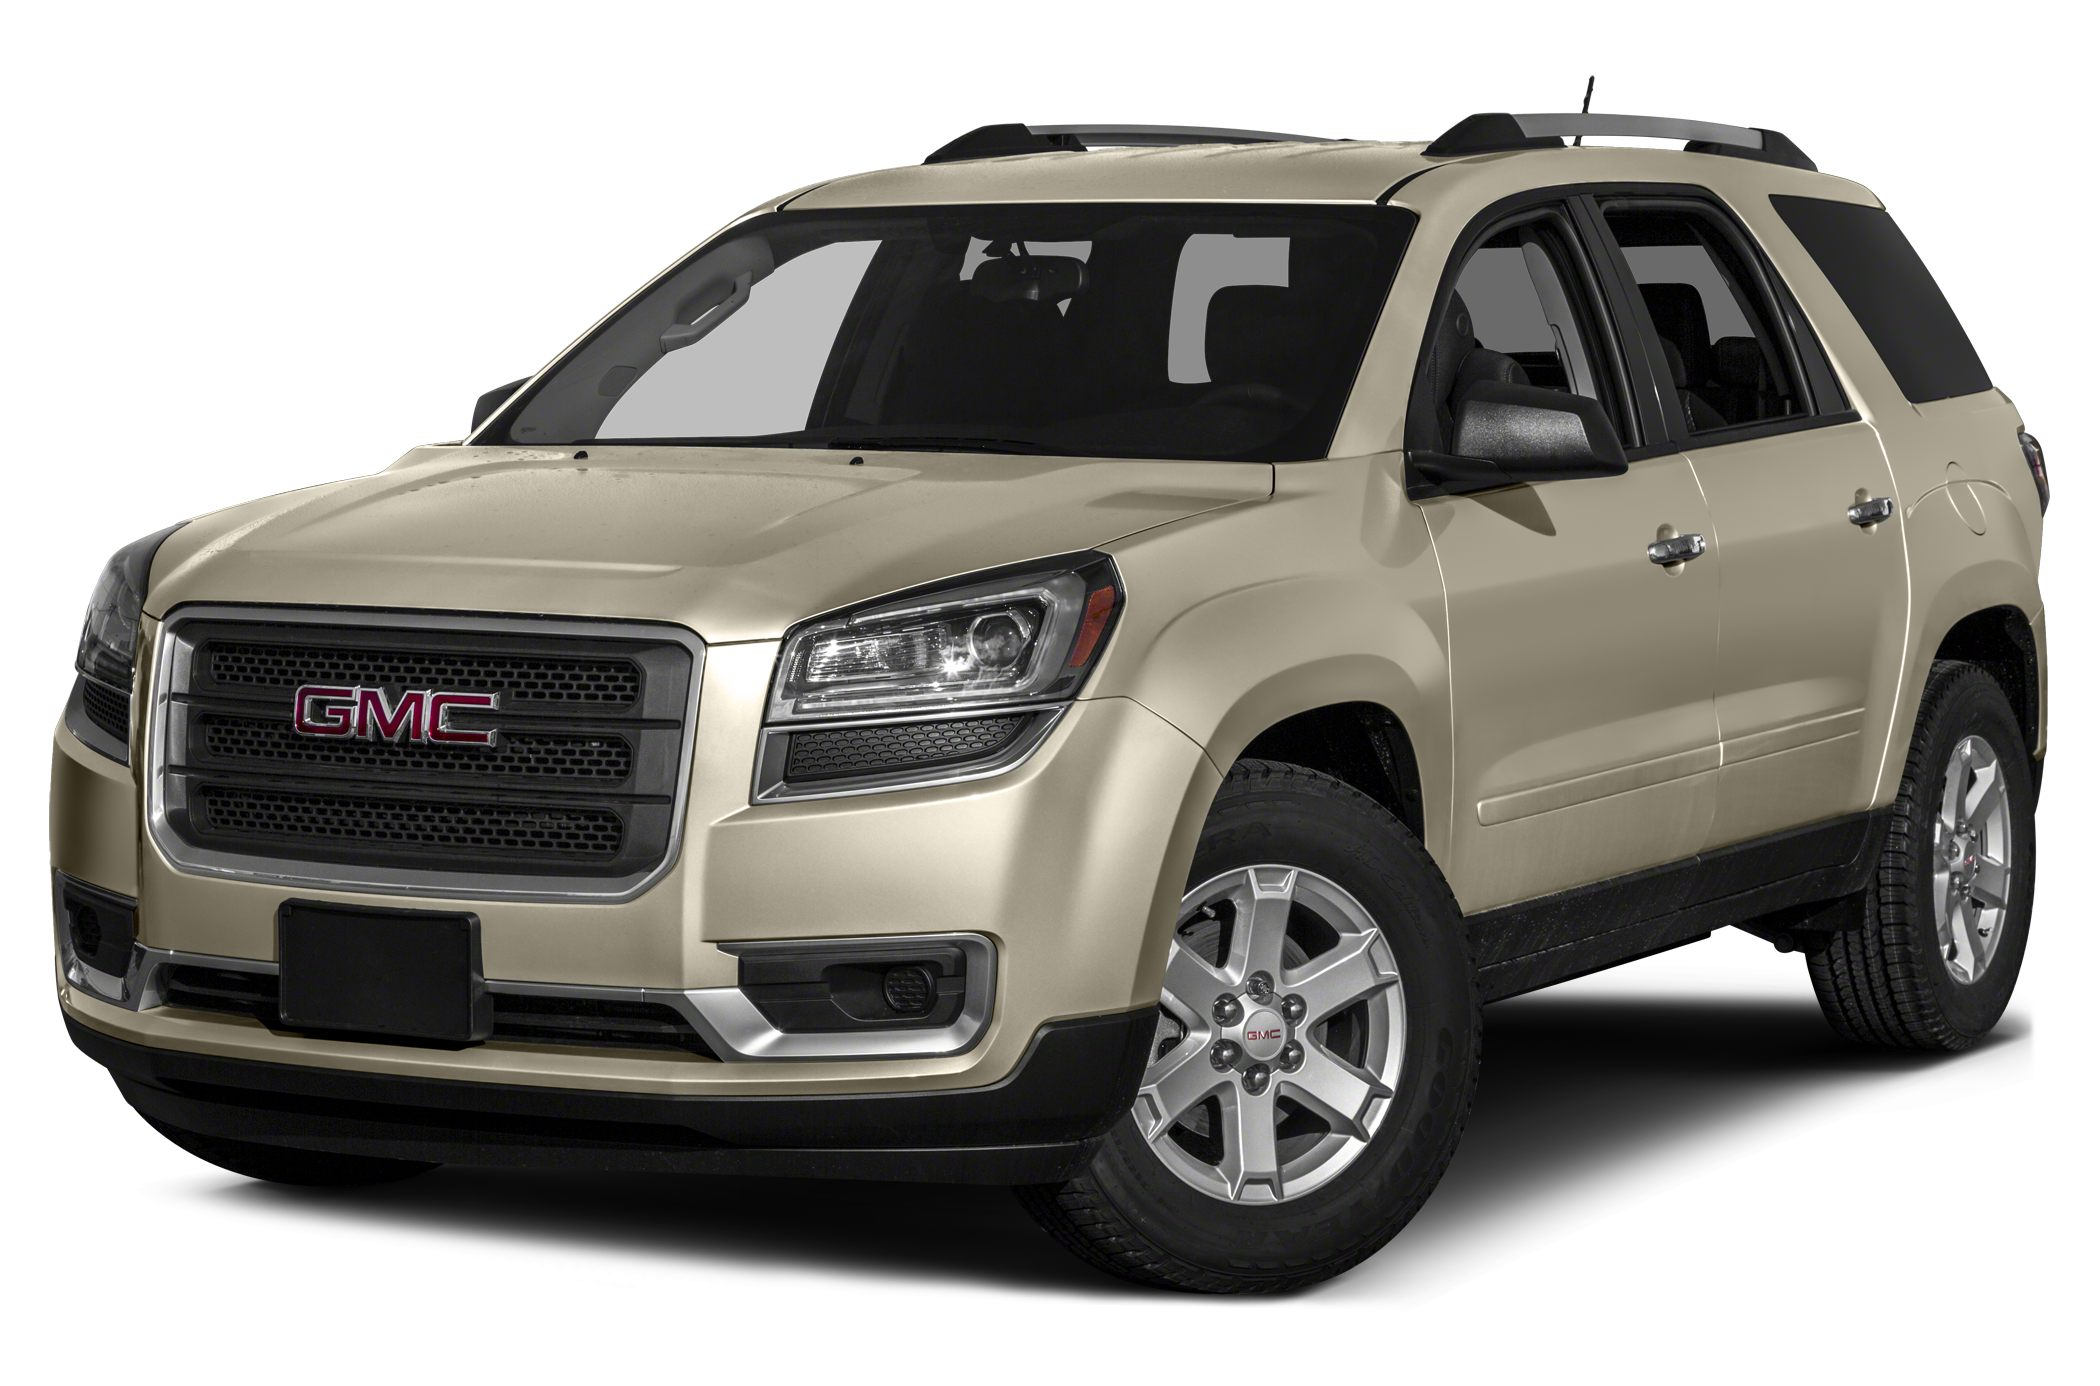 2013 GMC Acadia SLT-1 SUV for sale in Columbus for $30,994 with 43,716 miles